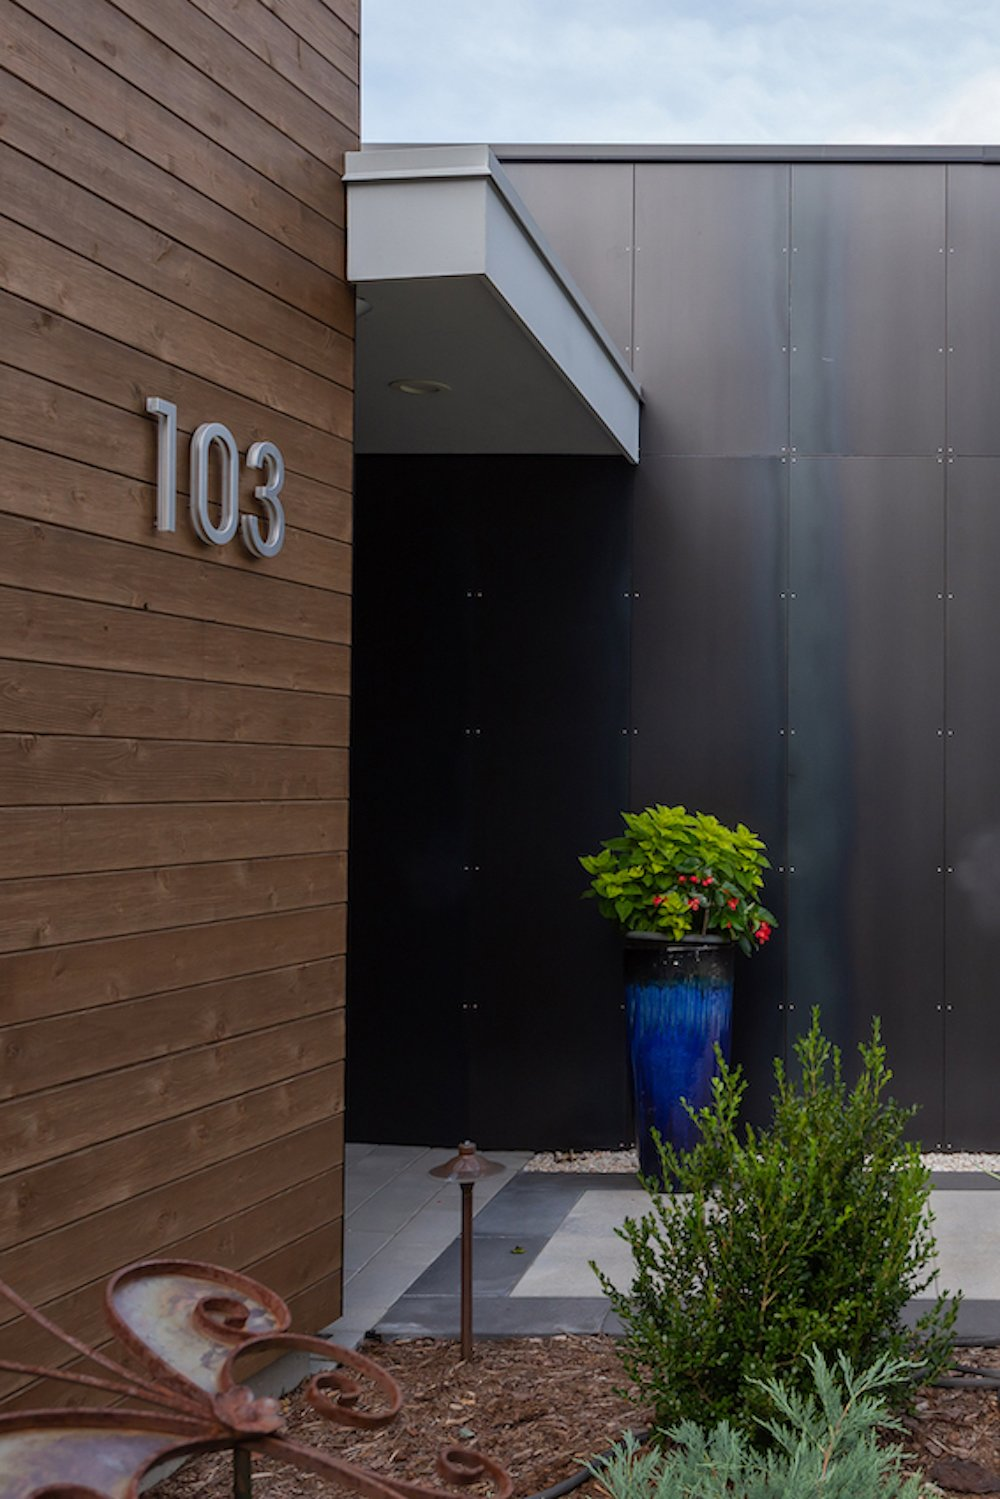 Exterior, Metal Roof Material, House Building Type, Wood Siding Material, Flat RoofLine, and Metal Siding Material Natural cedar is a warm counterpoint to the dramatic steel wall at the entrance.  The Thomas Residence